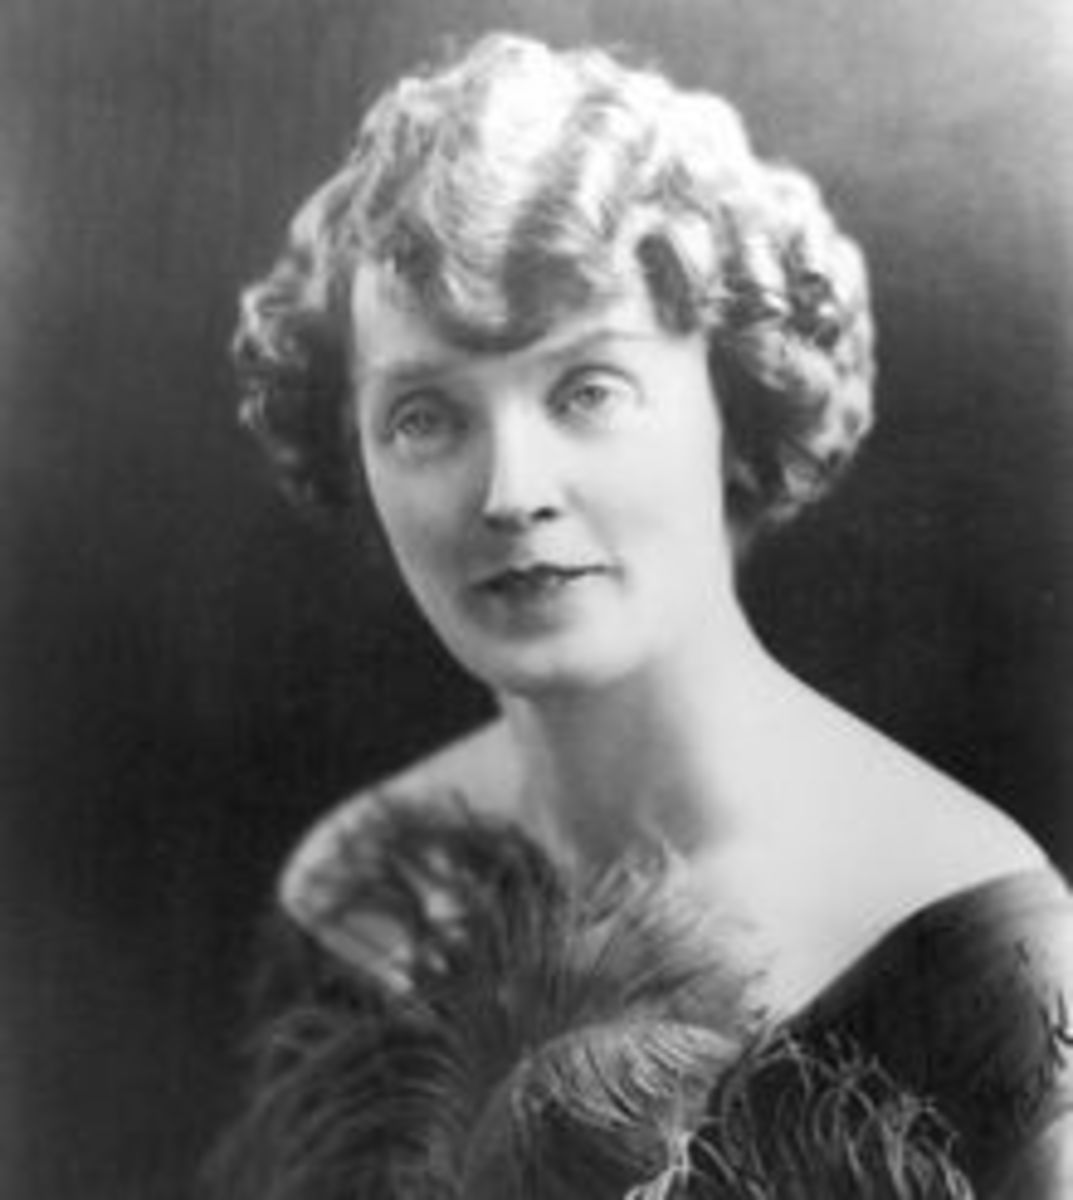 Numerous circus photos of Mabel Stark can be viewed on Pinterest. https://www.pinterest.com/gilon88/mabel-stark/?lp=true